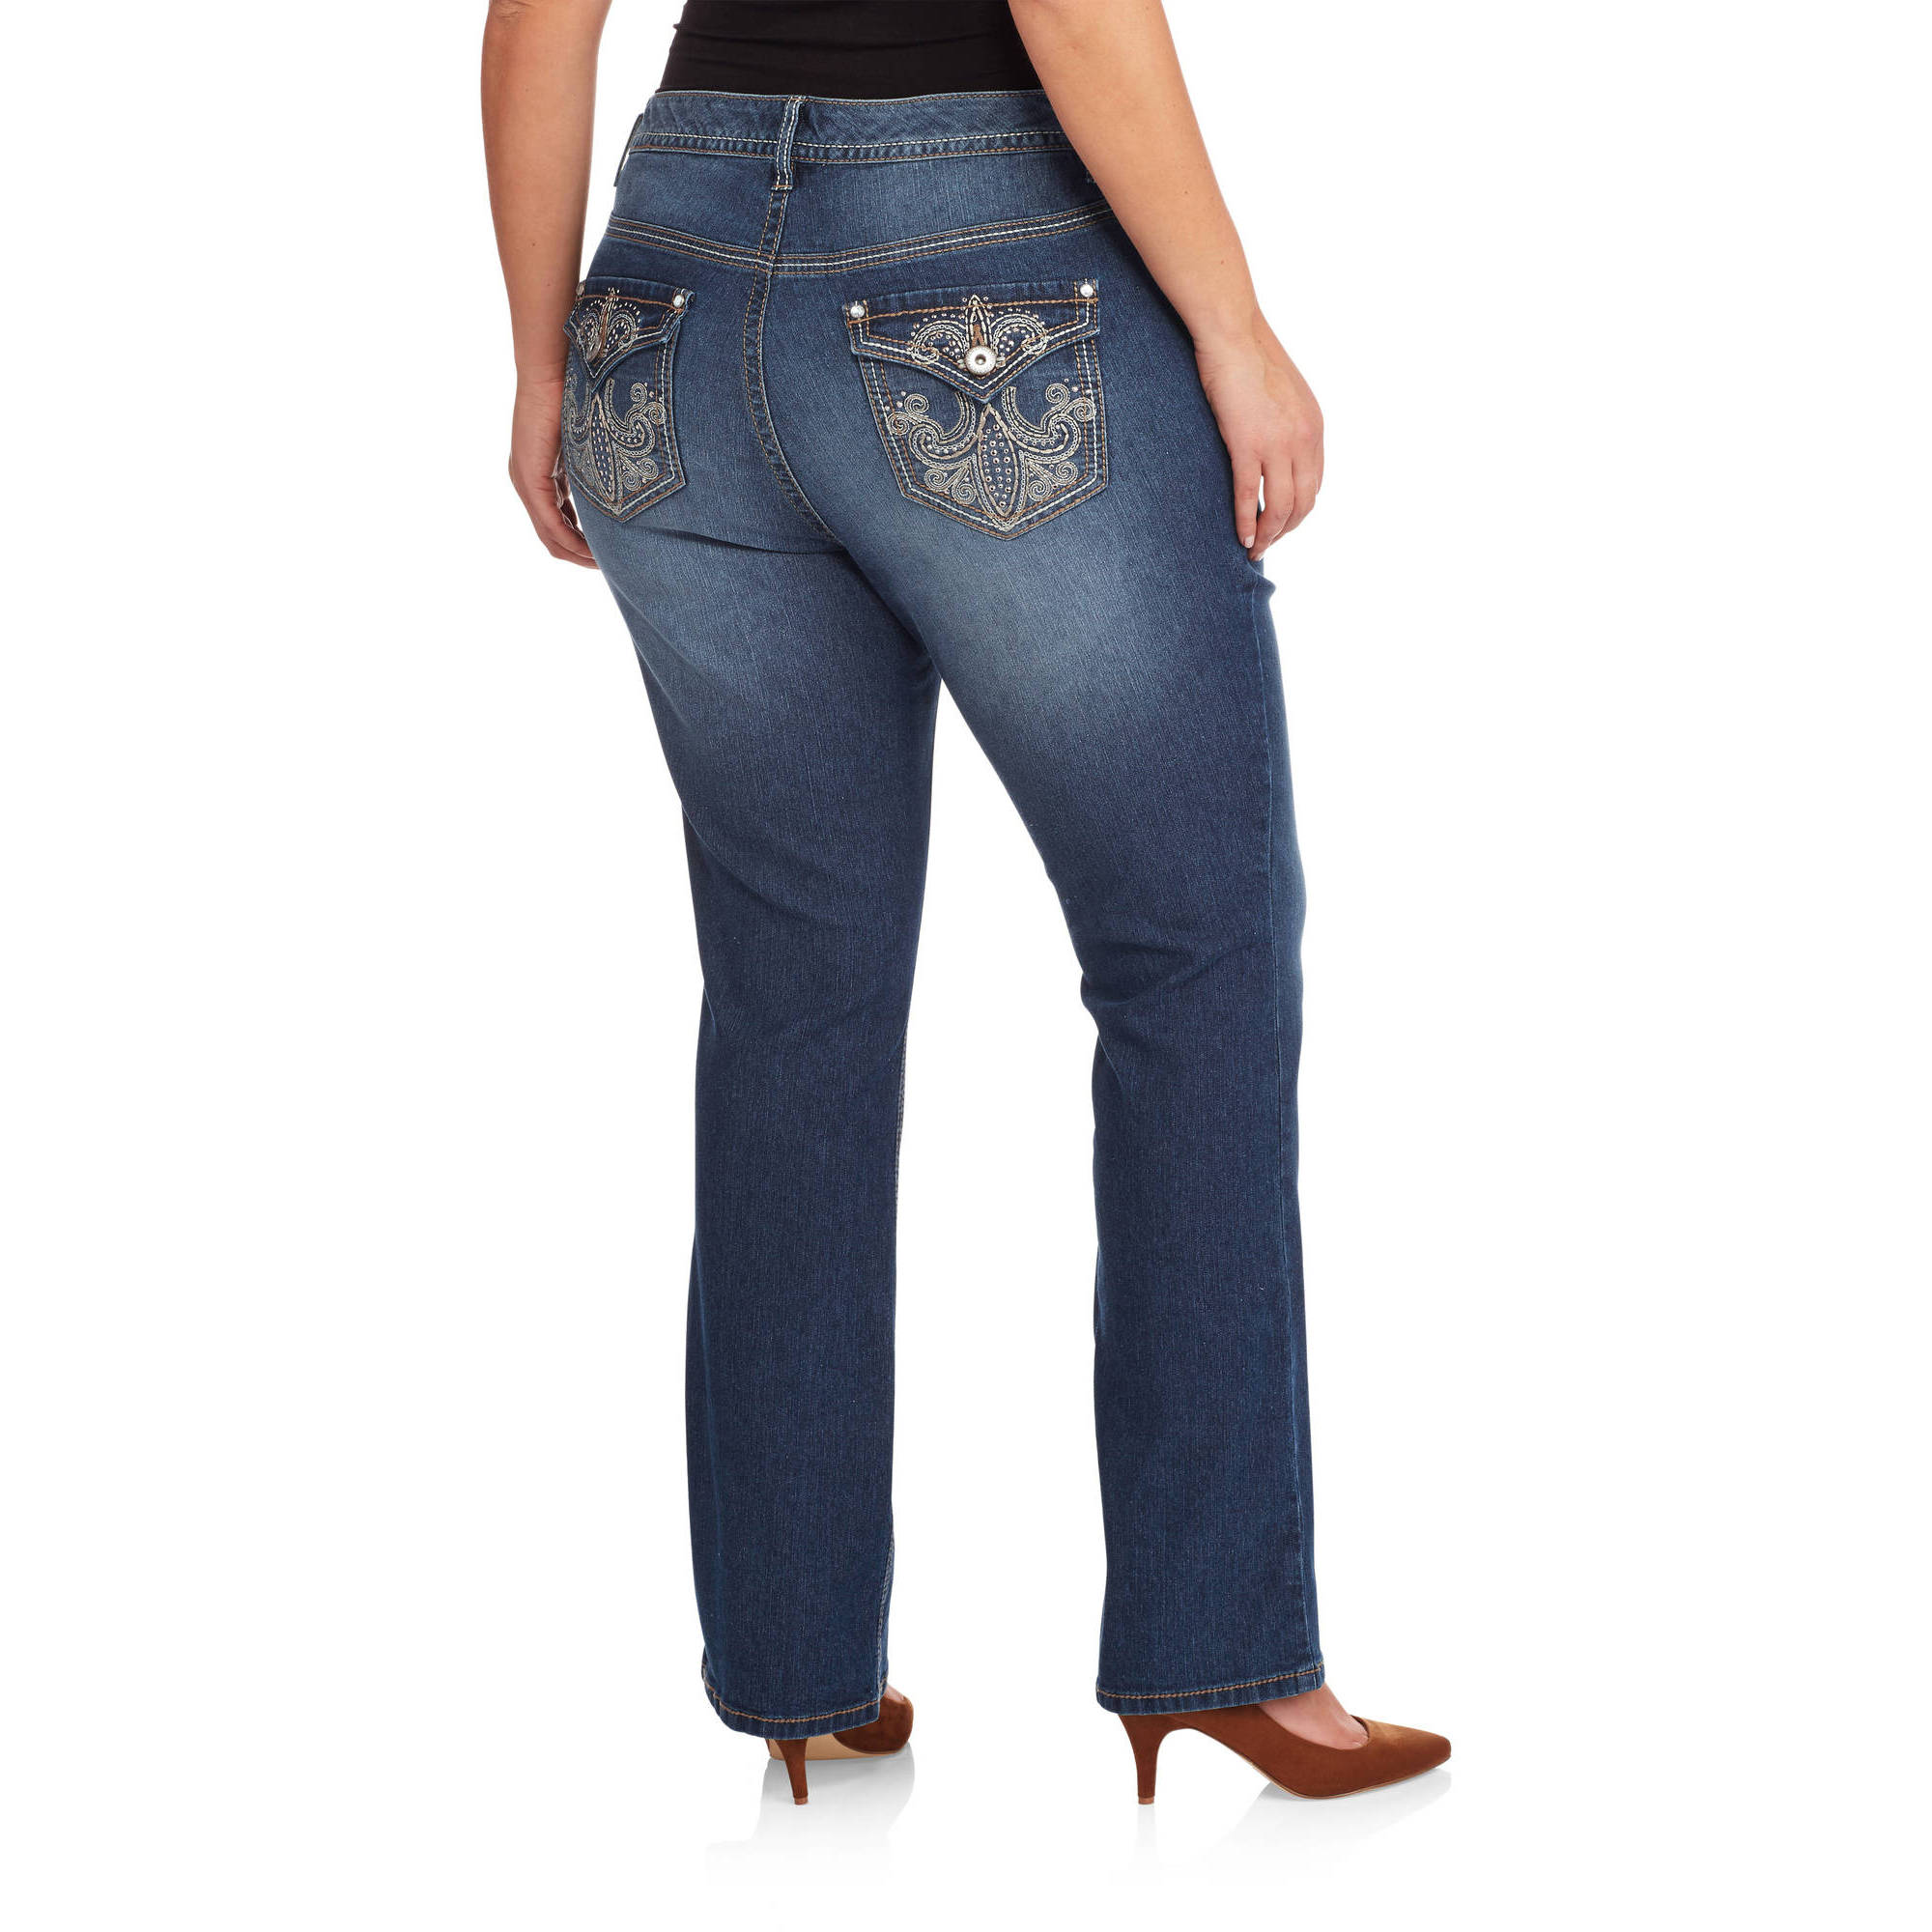 Faded Glory Women's Plus-Size Embellished Jeans